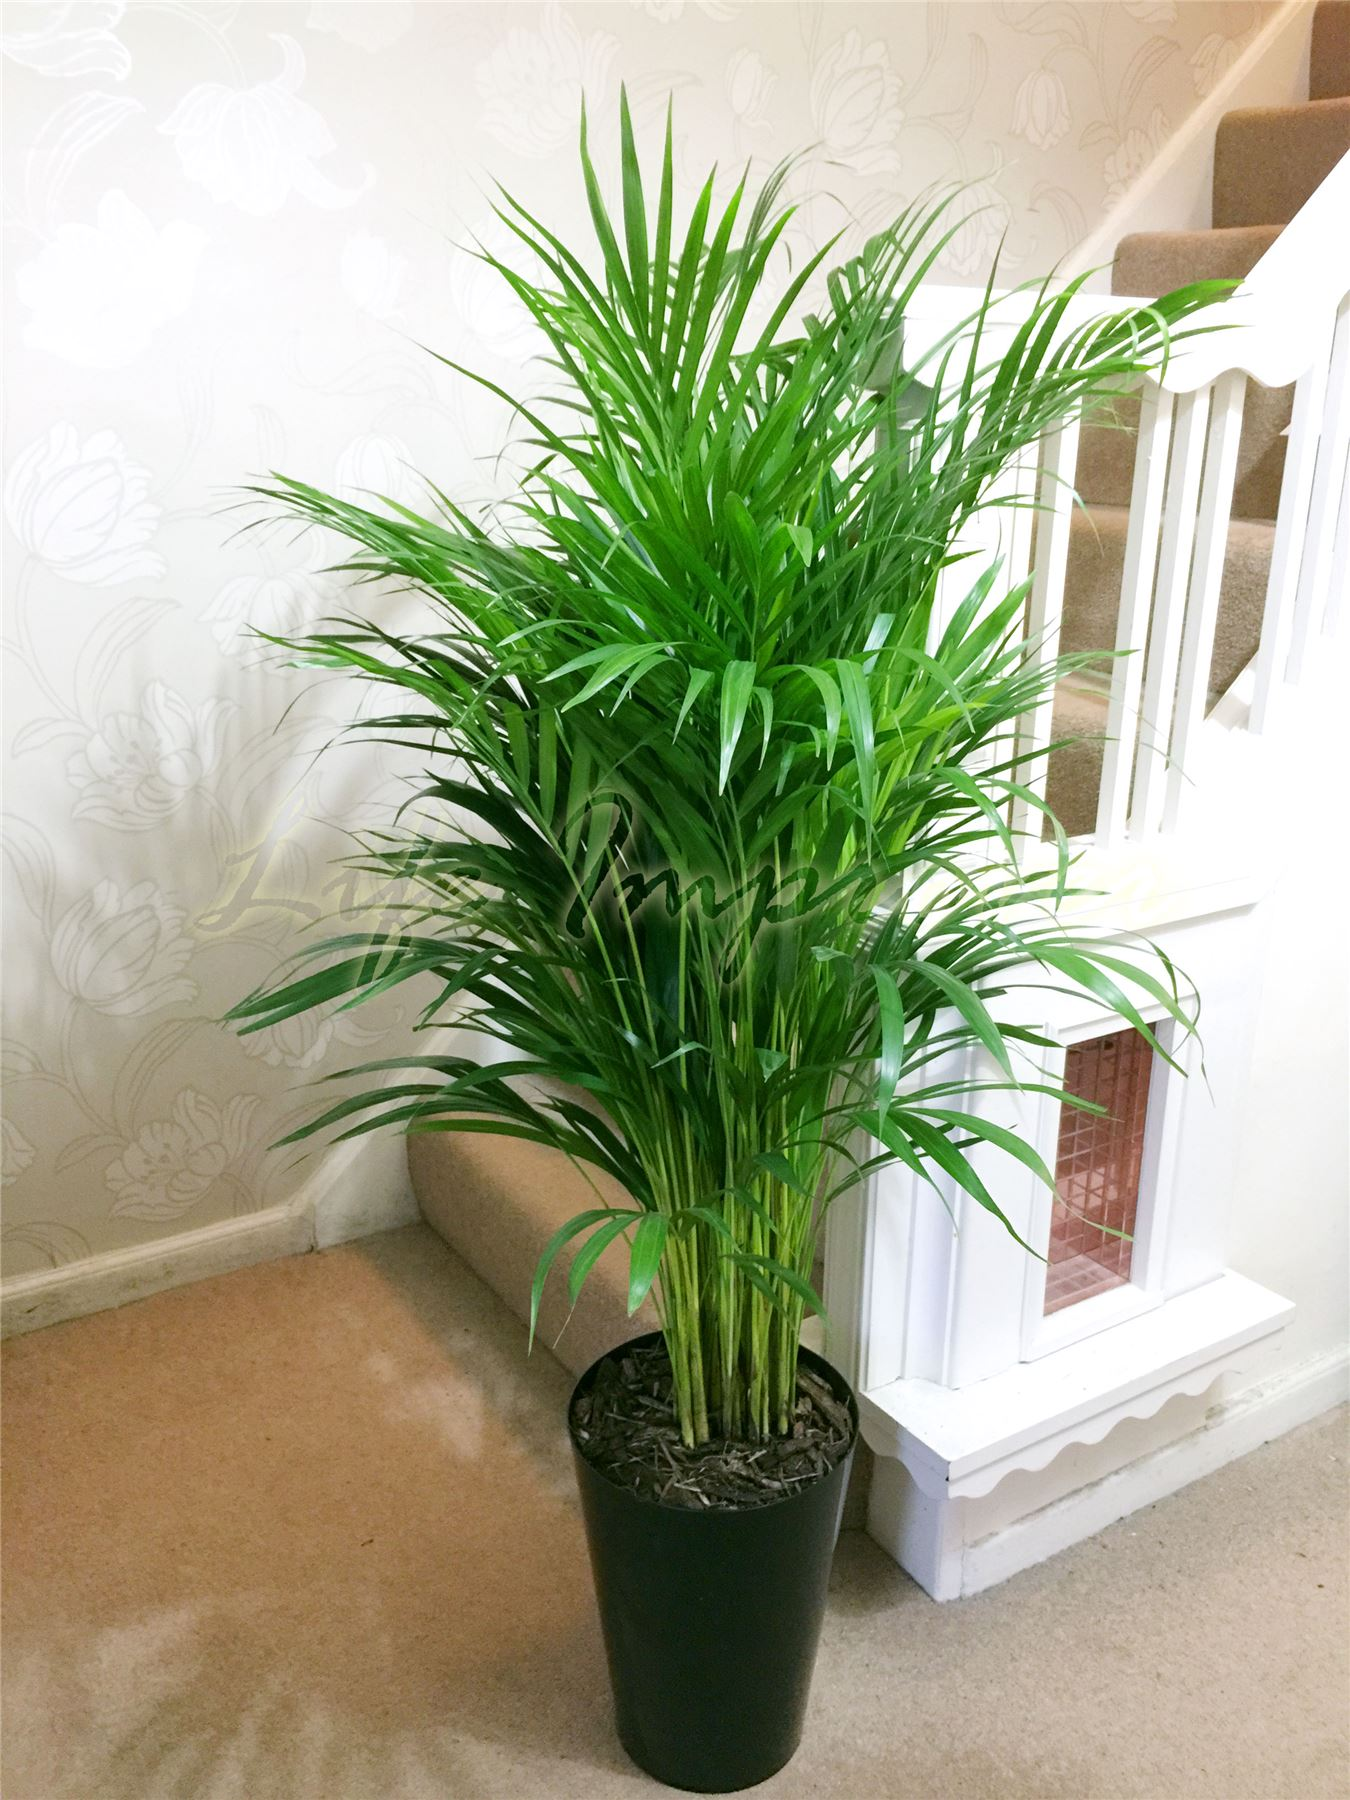 Bon 1 Large Evergreen Office House Plant Indoor Tree